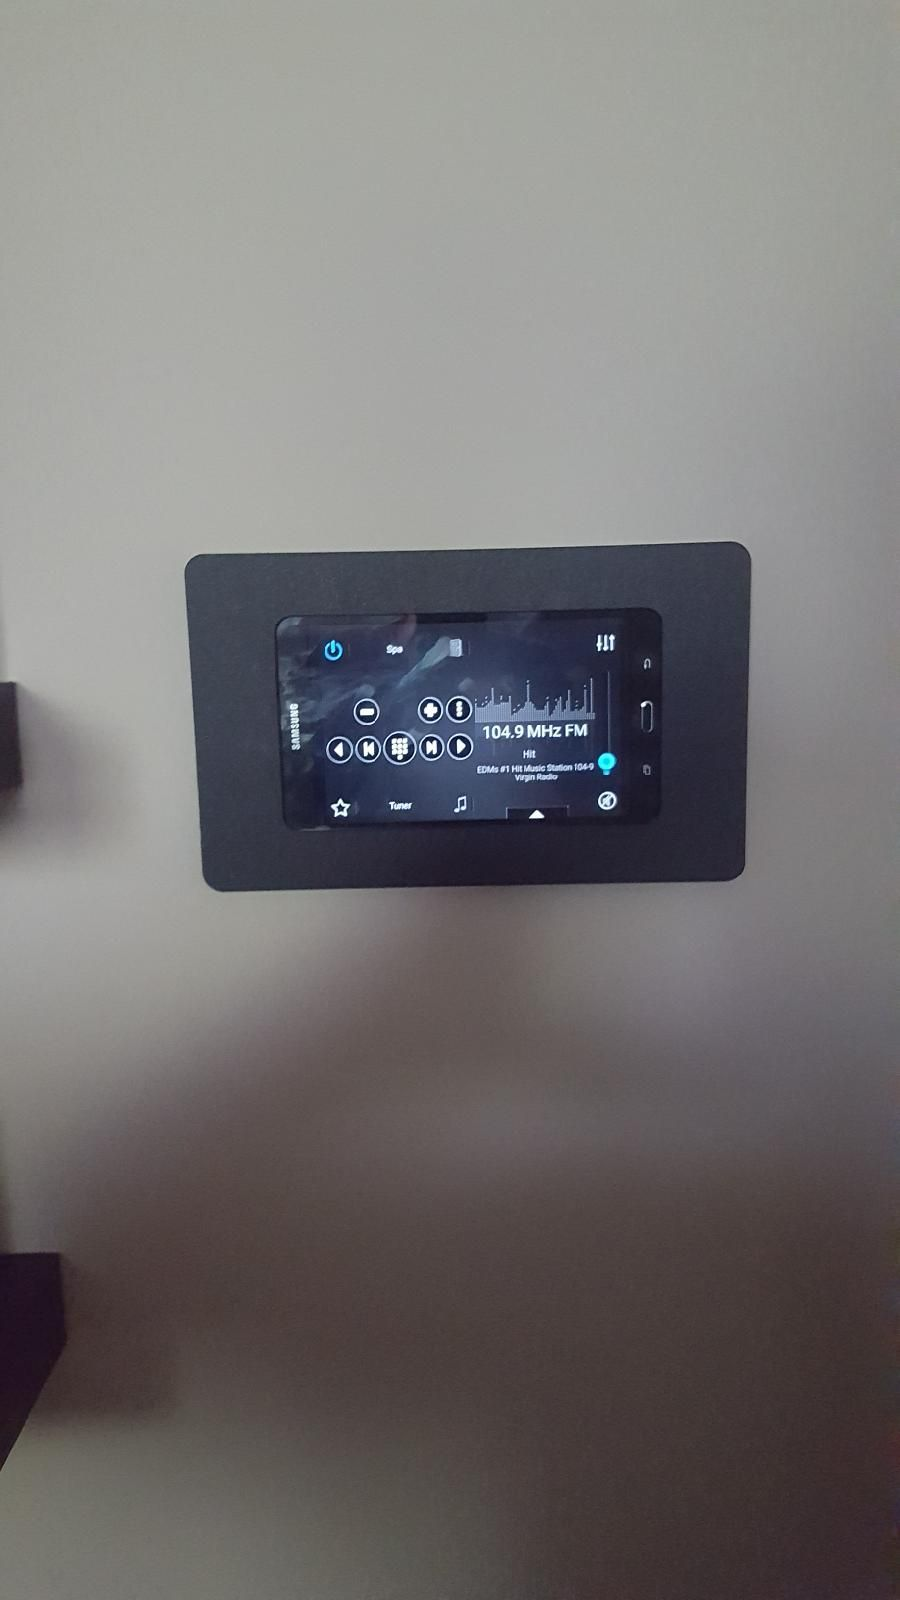 Android Especially Samsung Galaxy Tabs Make For Great Smarthome Controller Use Them With Vidamounts For A Great Home Automation Android Tablets Tablet Mount